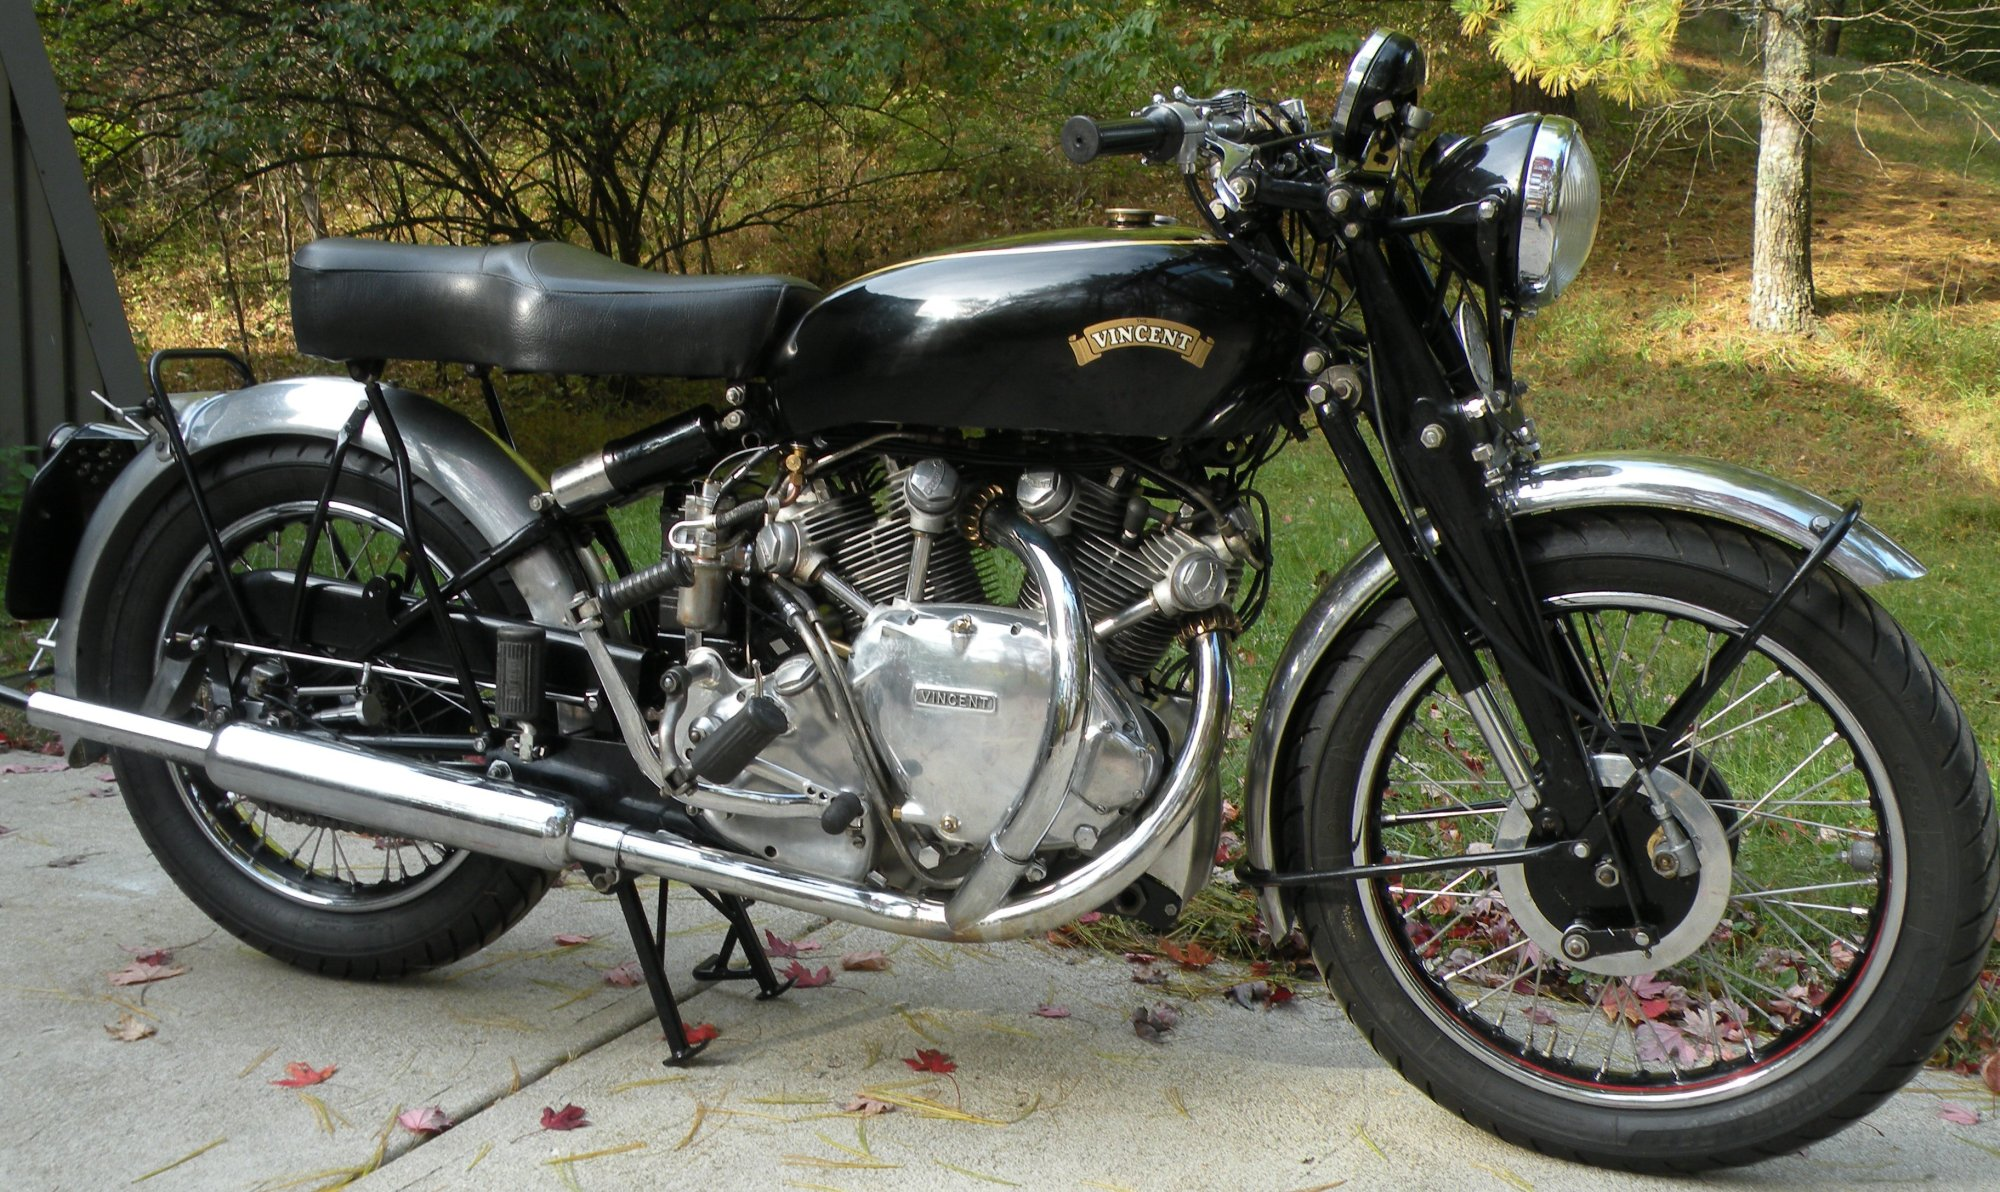 hight resolution of for sale 1952 vincent rapide totally rebuilt 3 years ago new barrels 9 1 pistons shadow carbs rebuilt by lund cylinder heads rebuilt by bewley